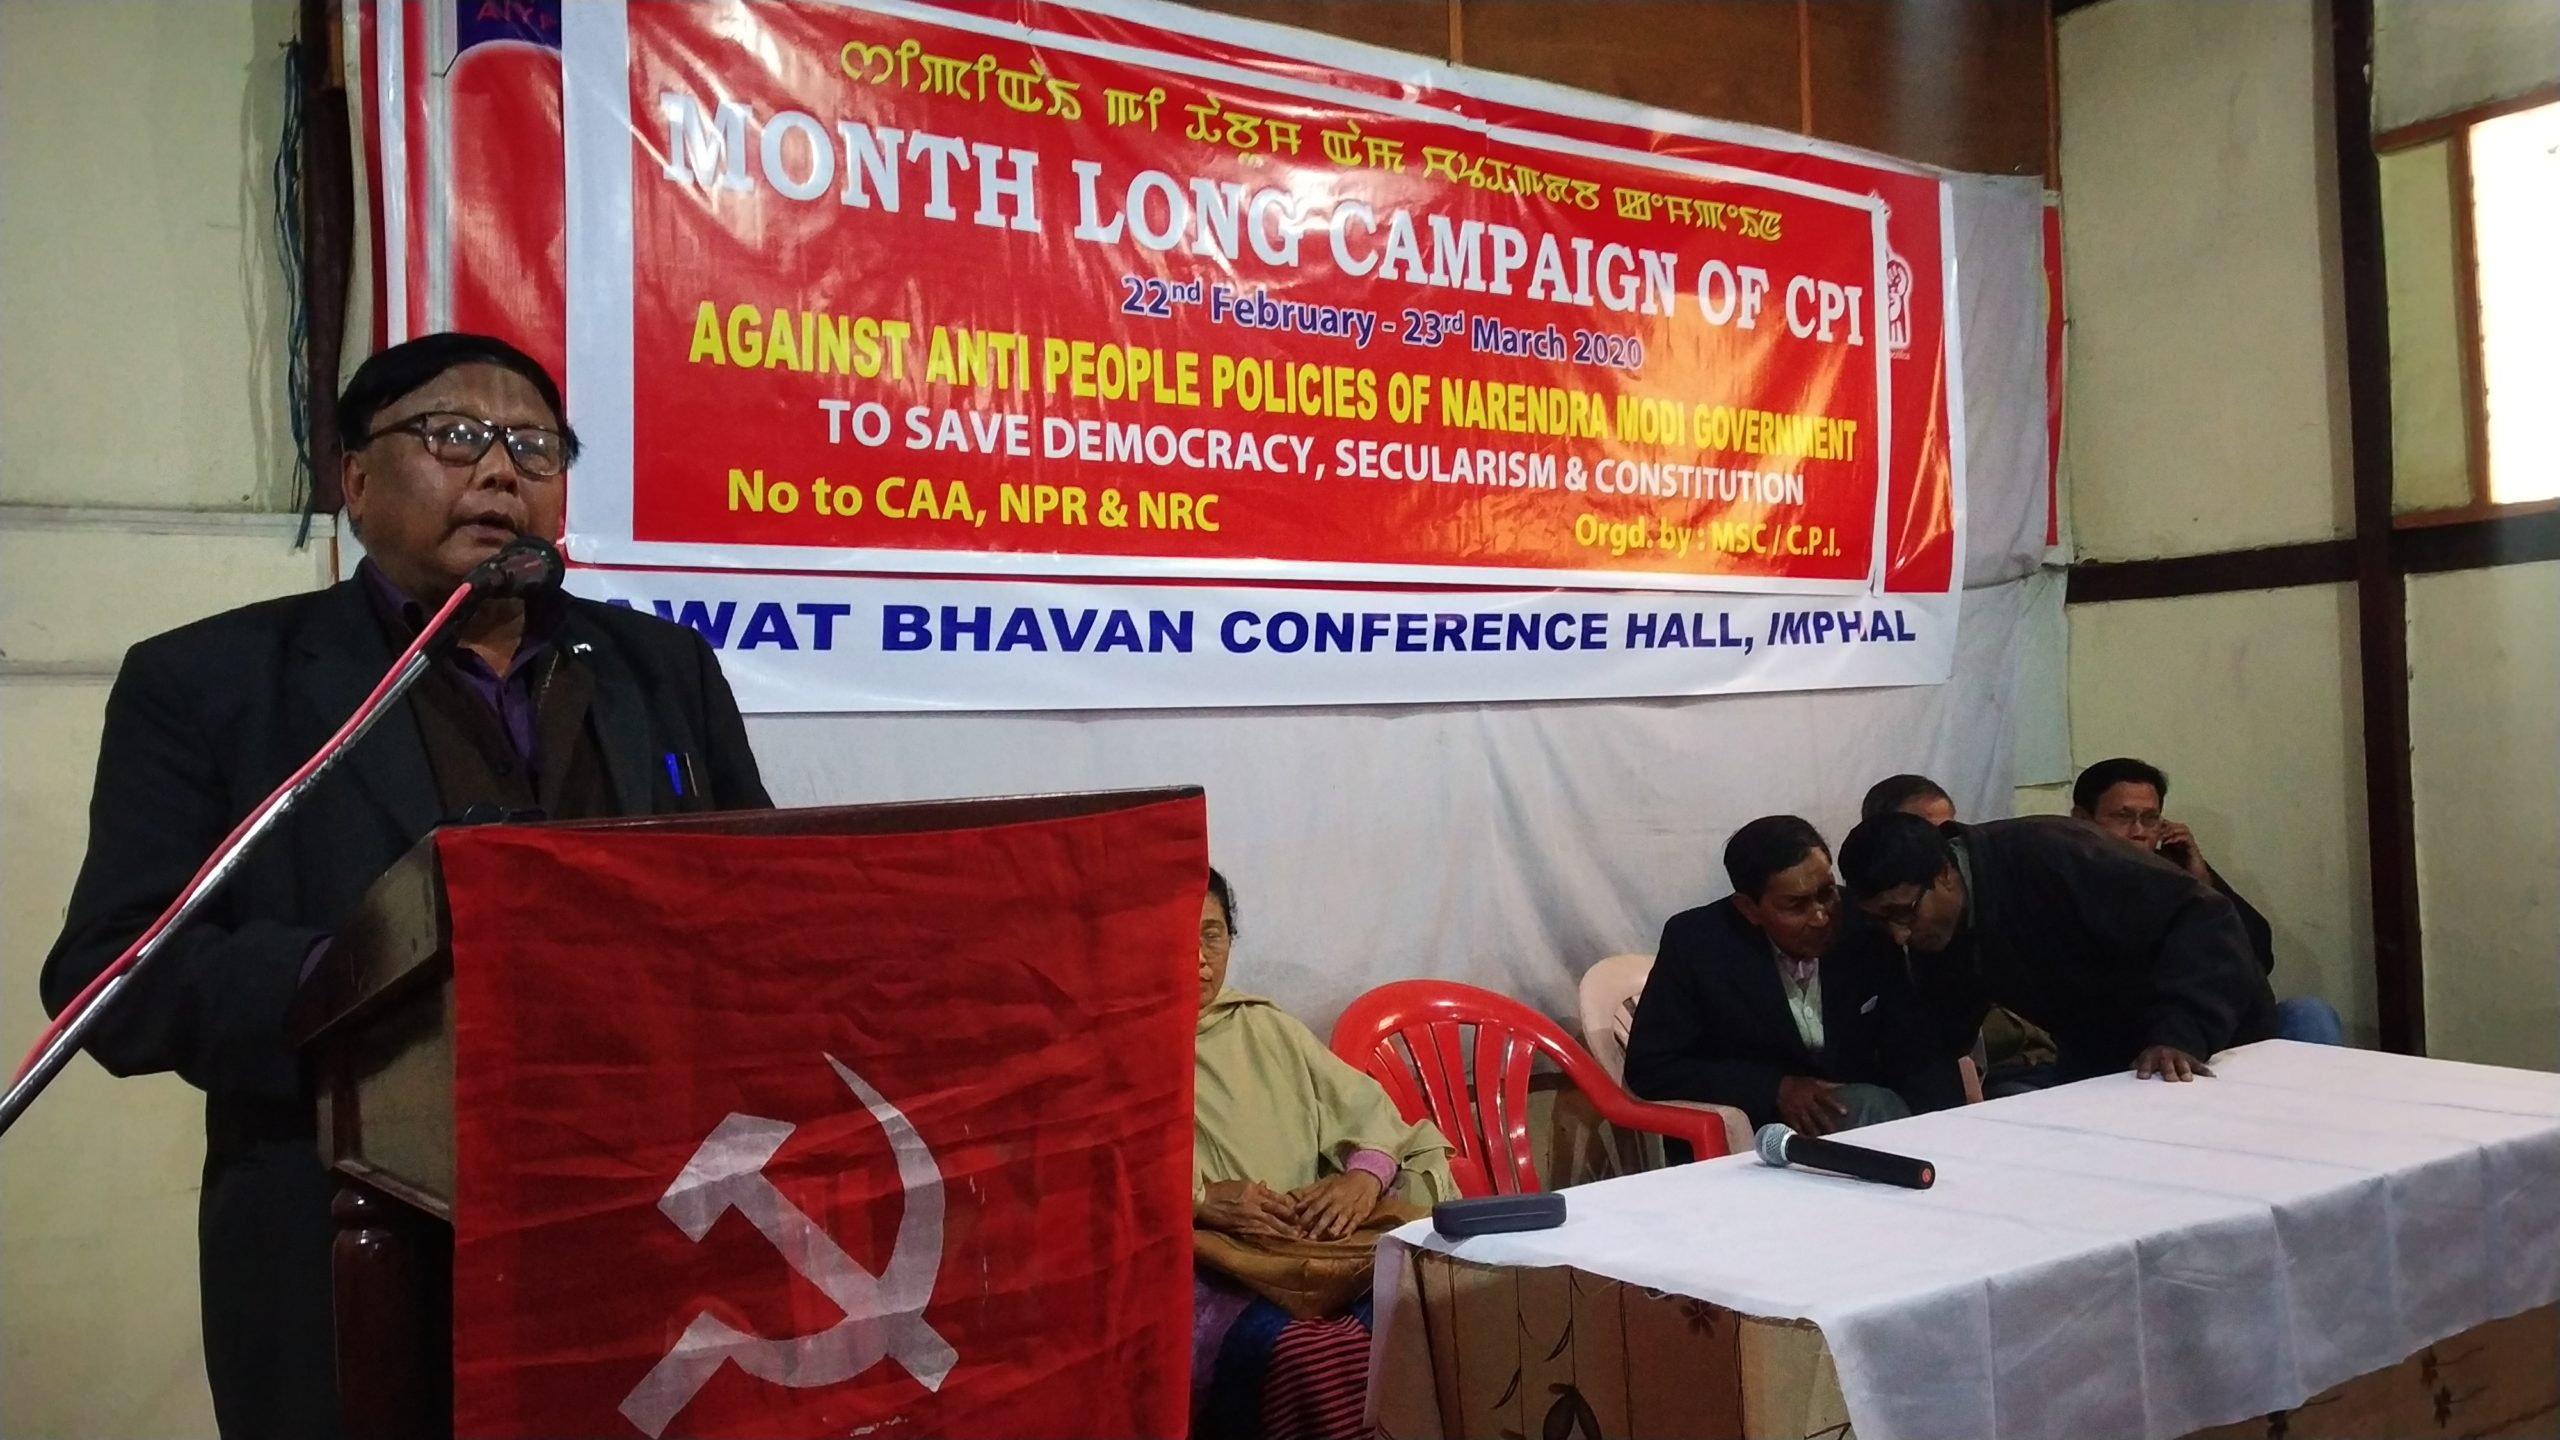 CPI Manipur launches month-long campaign to save democracy, secularism and Constitution